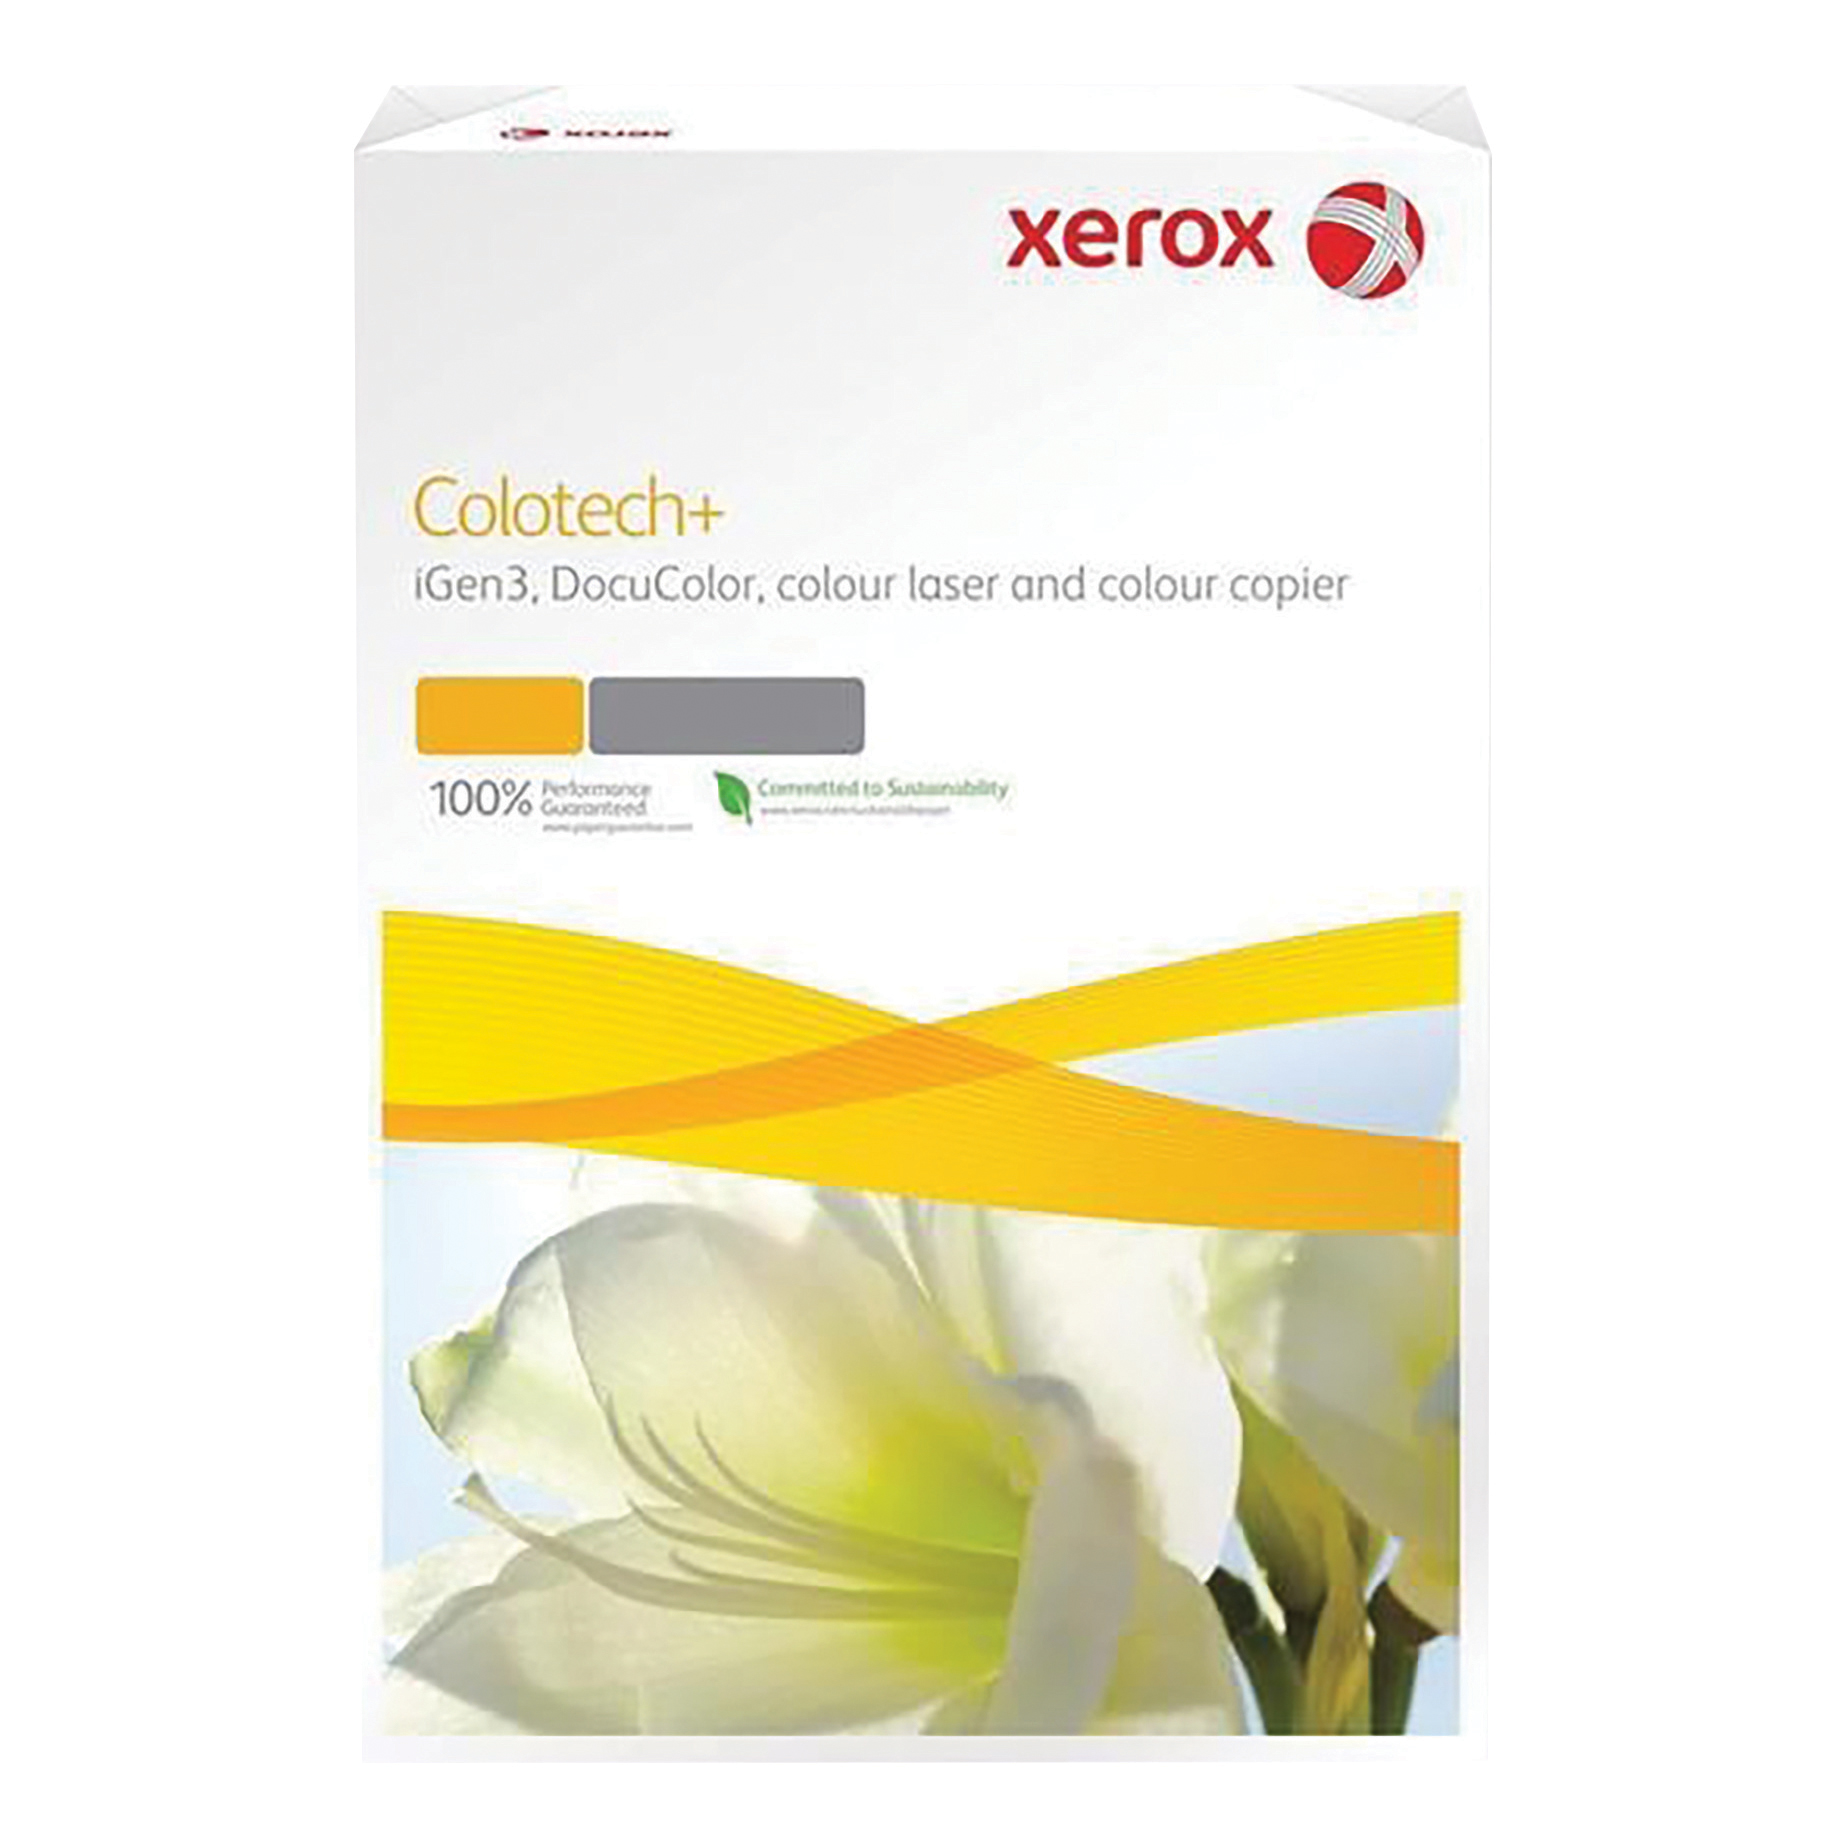 Xerox FSC Coltech+ Digital Colour Paper Prem Ream-Wrapped ColorLok 100gsm A3 White Ref 64462 500 Sheets